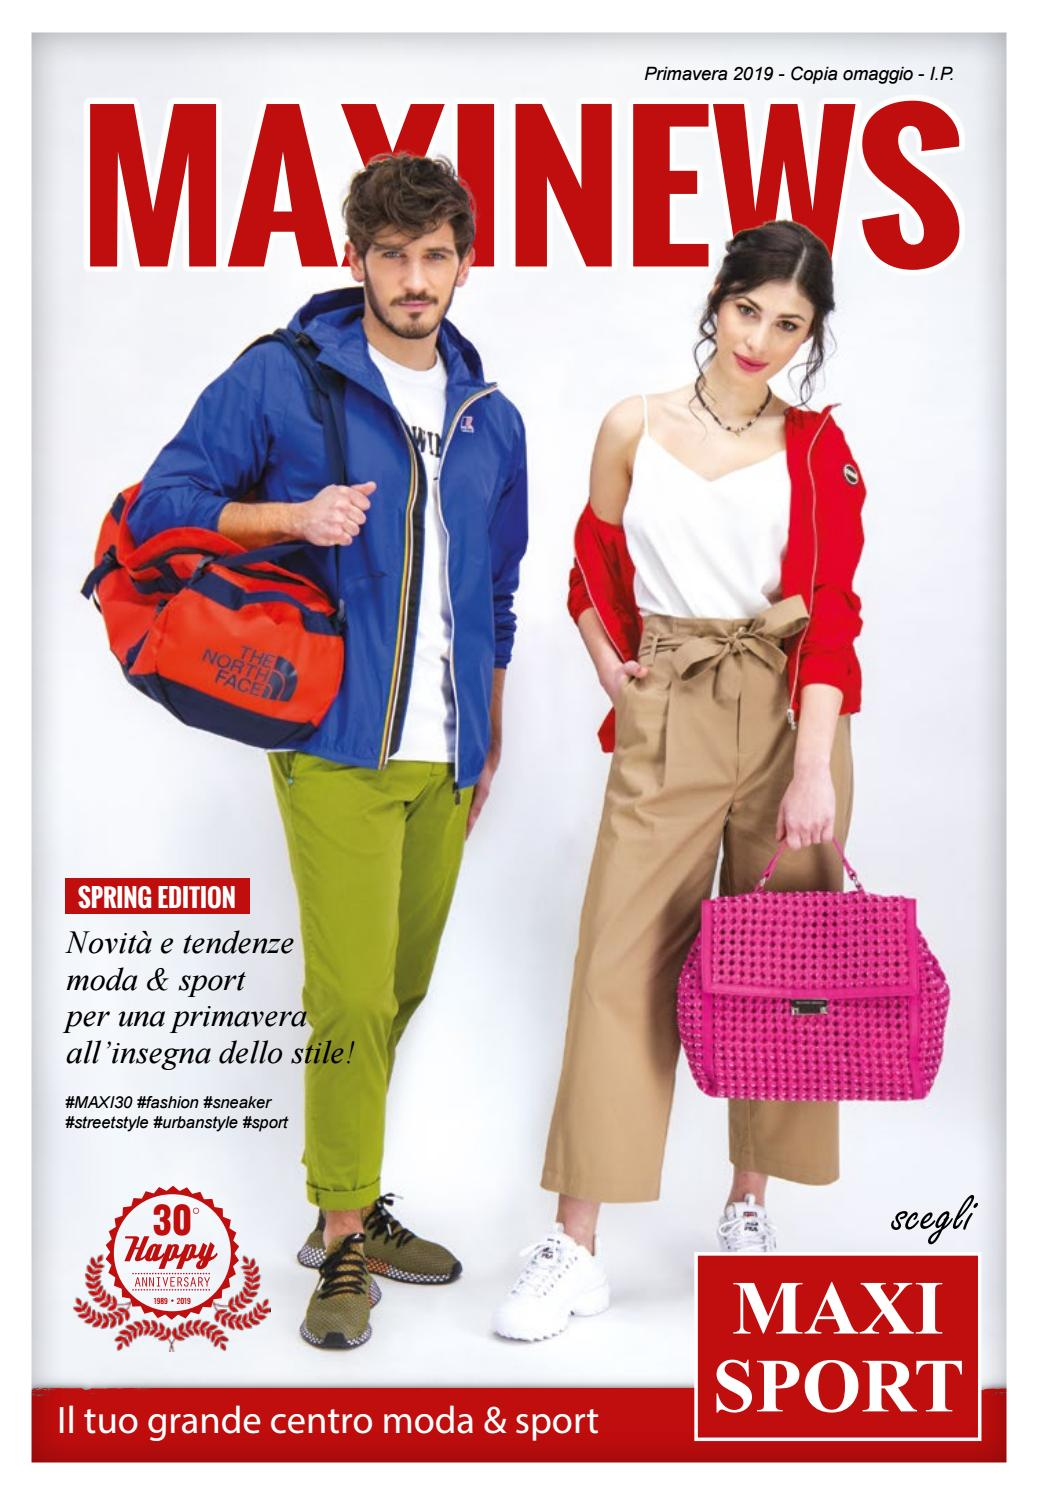 Maxinews Spring Edition 2019 by Maxi Sport issuu